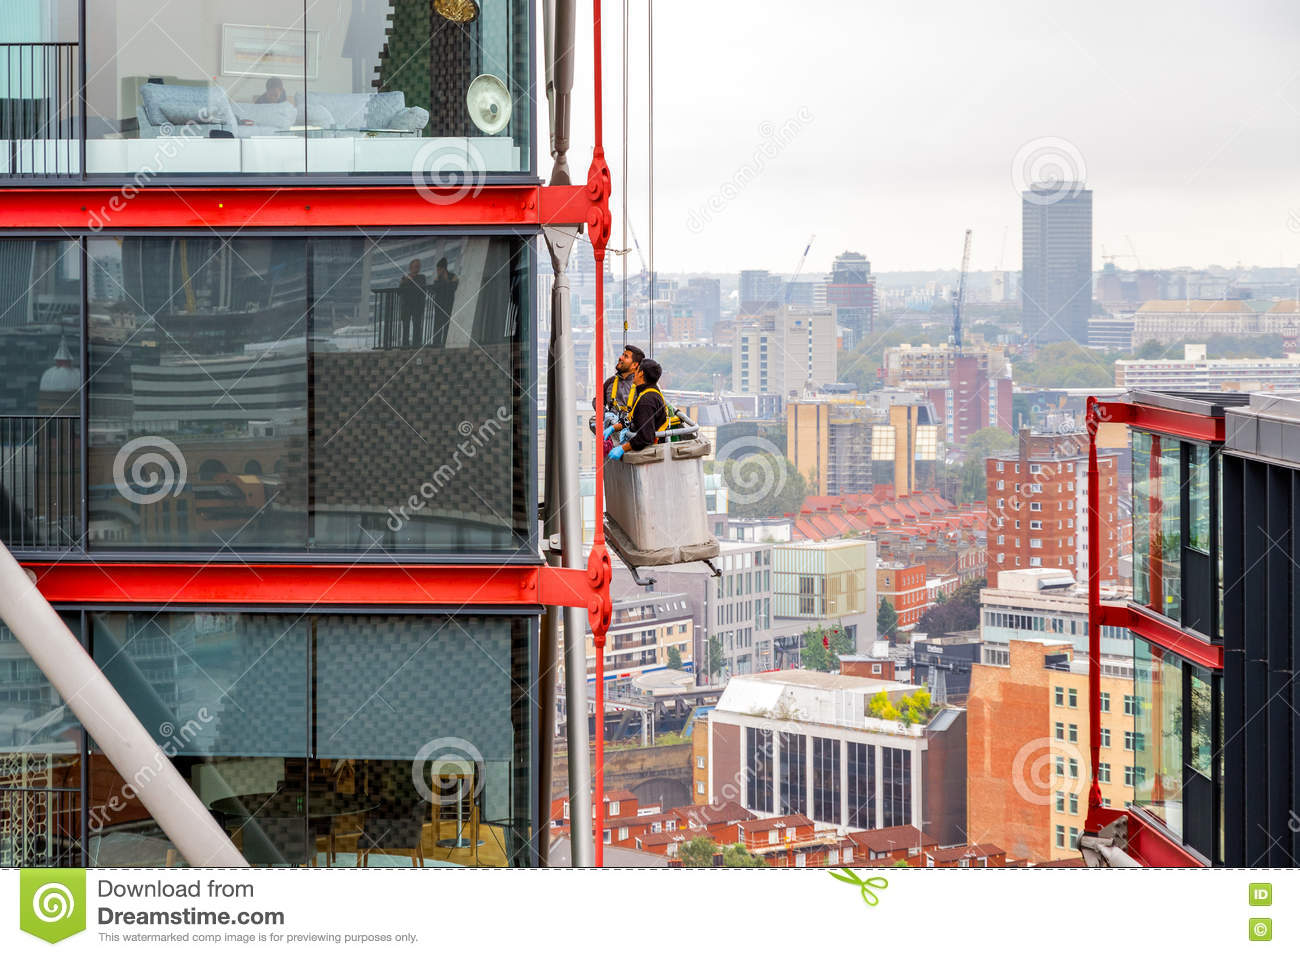 Window Cleaners Working on A High Rise Building